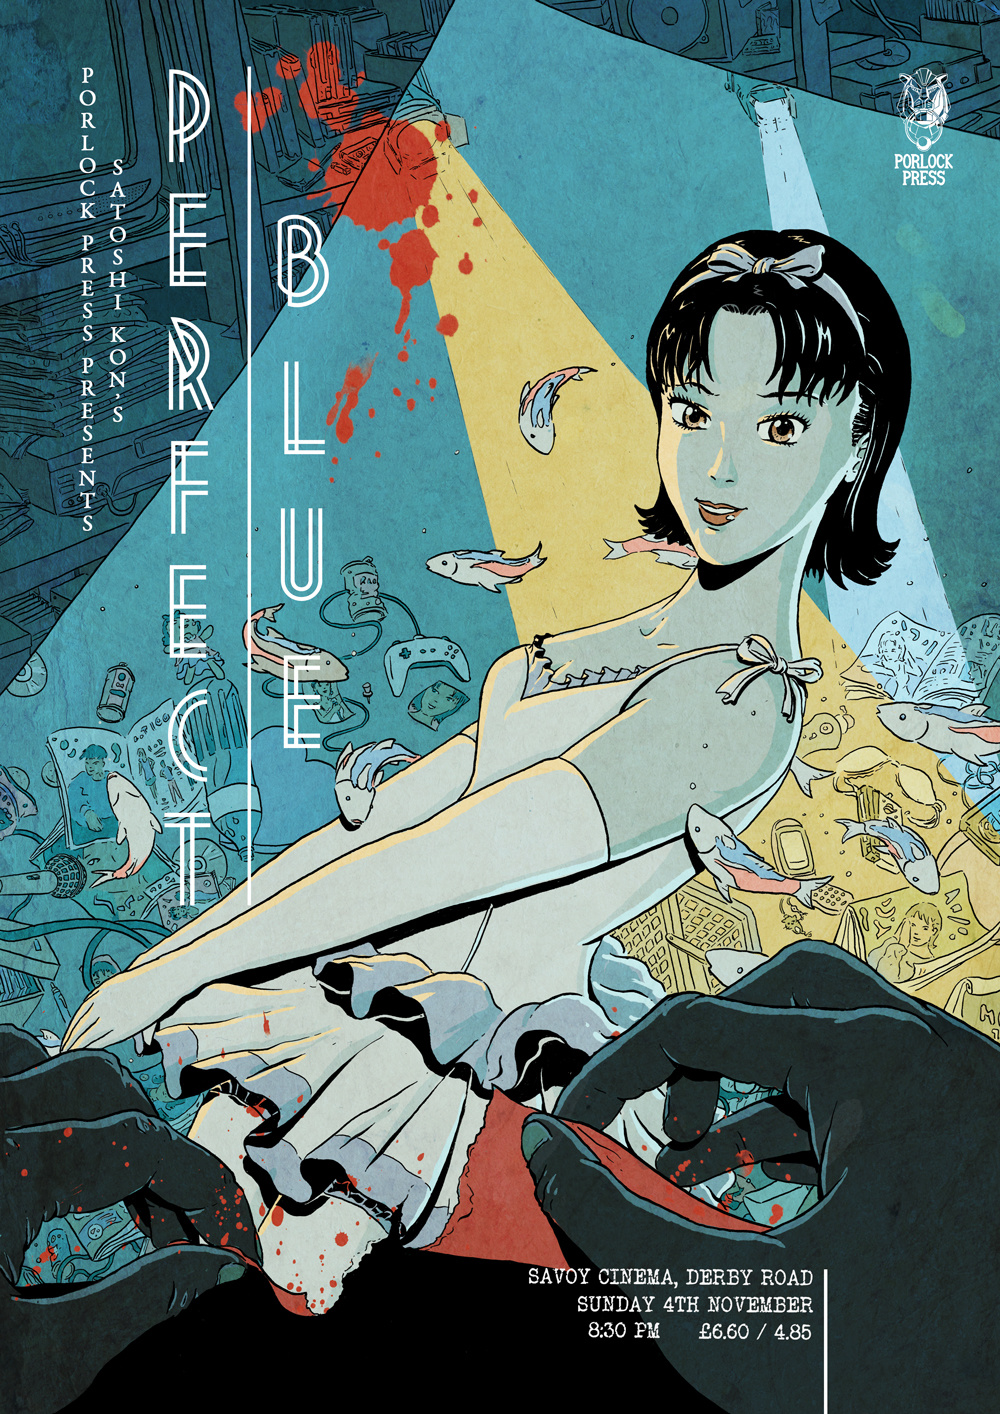 Satoshi Kon's 'Perfect Blue' And The Rise Of Cyberstalking